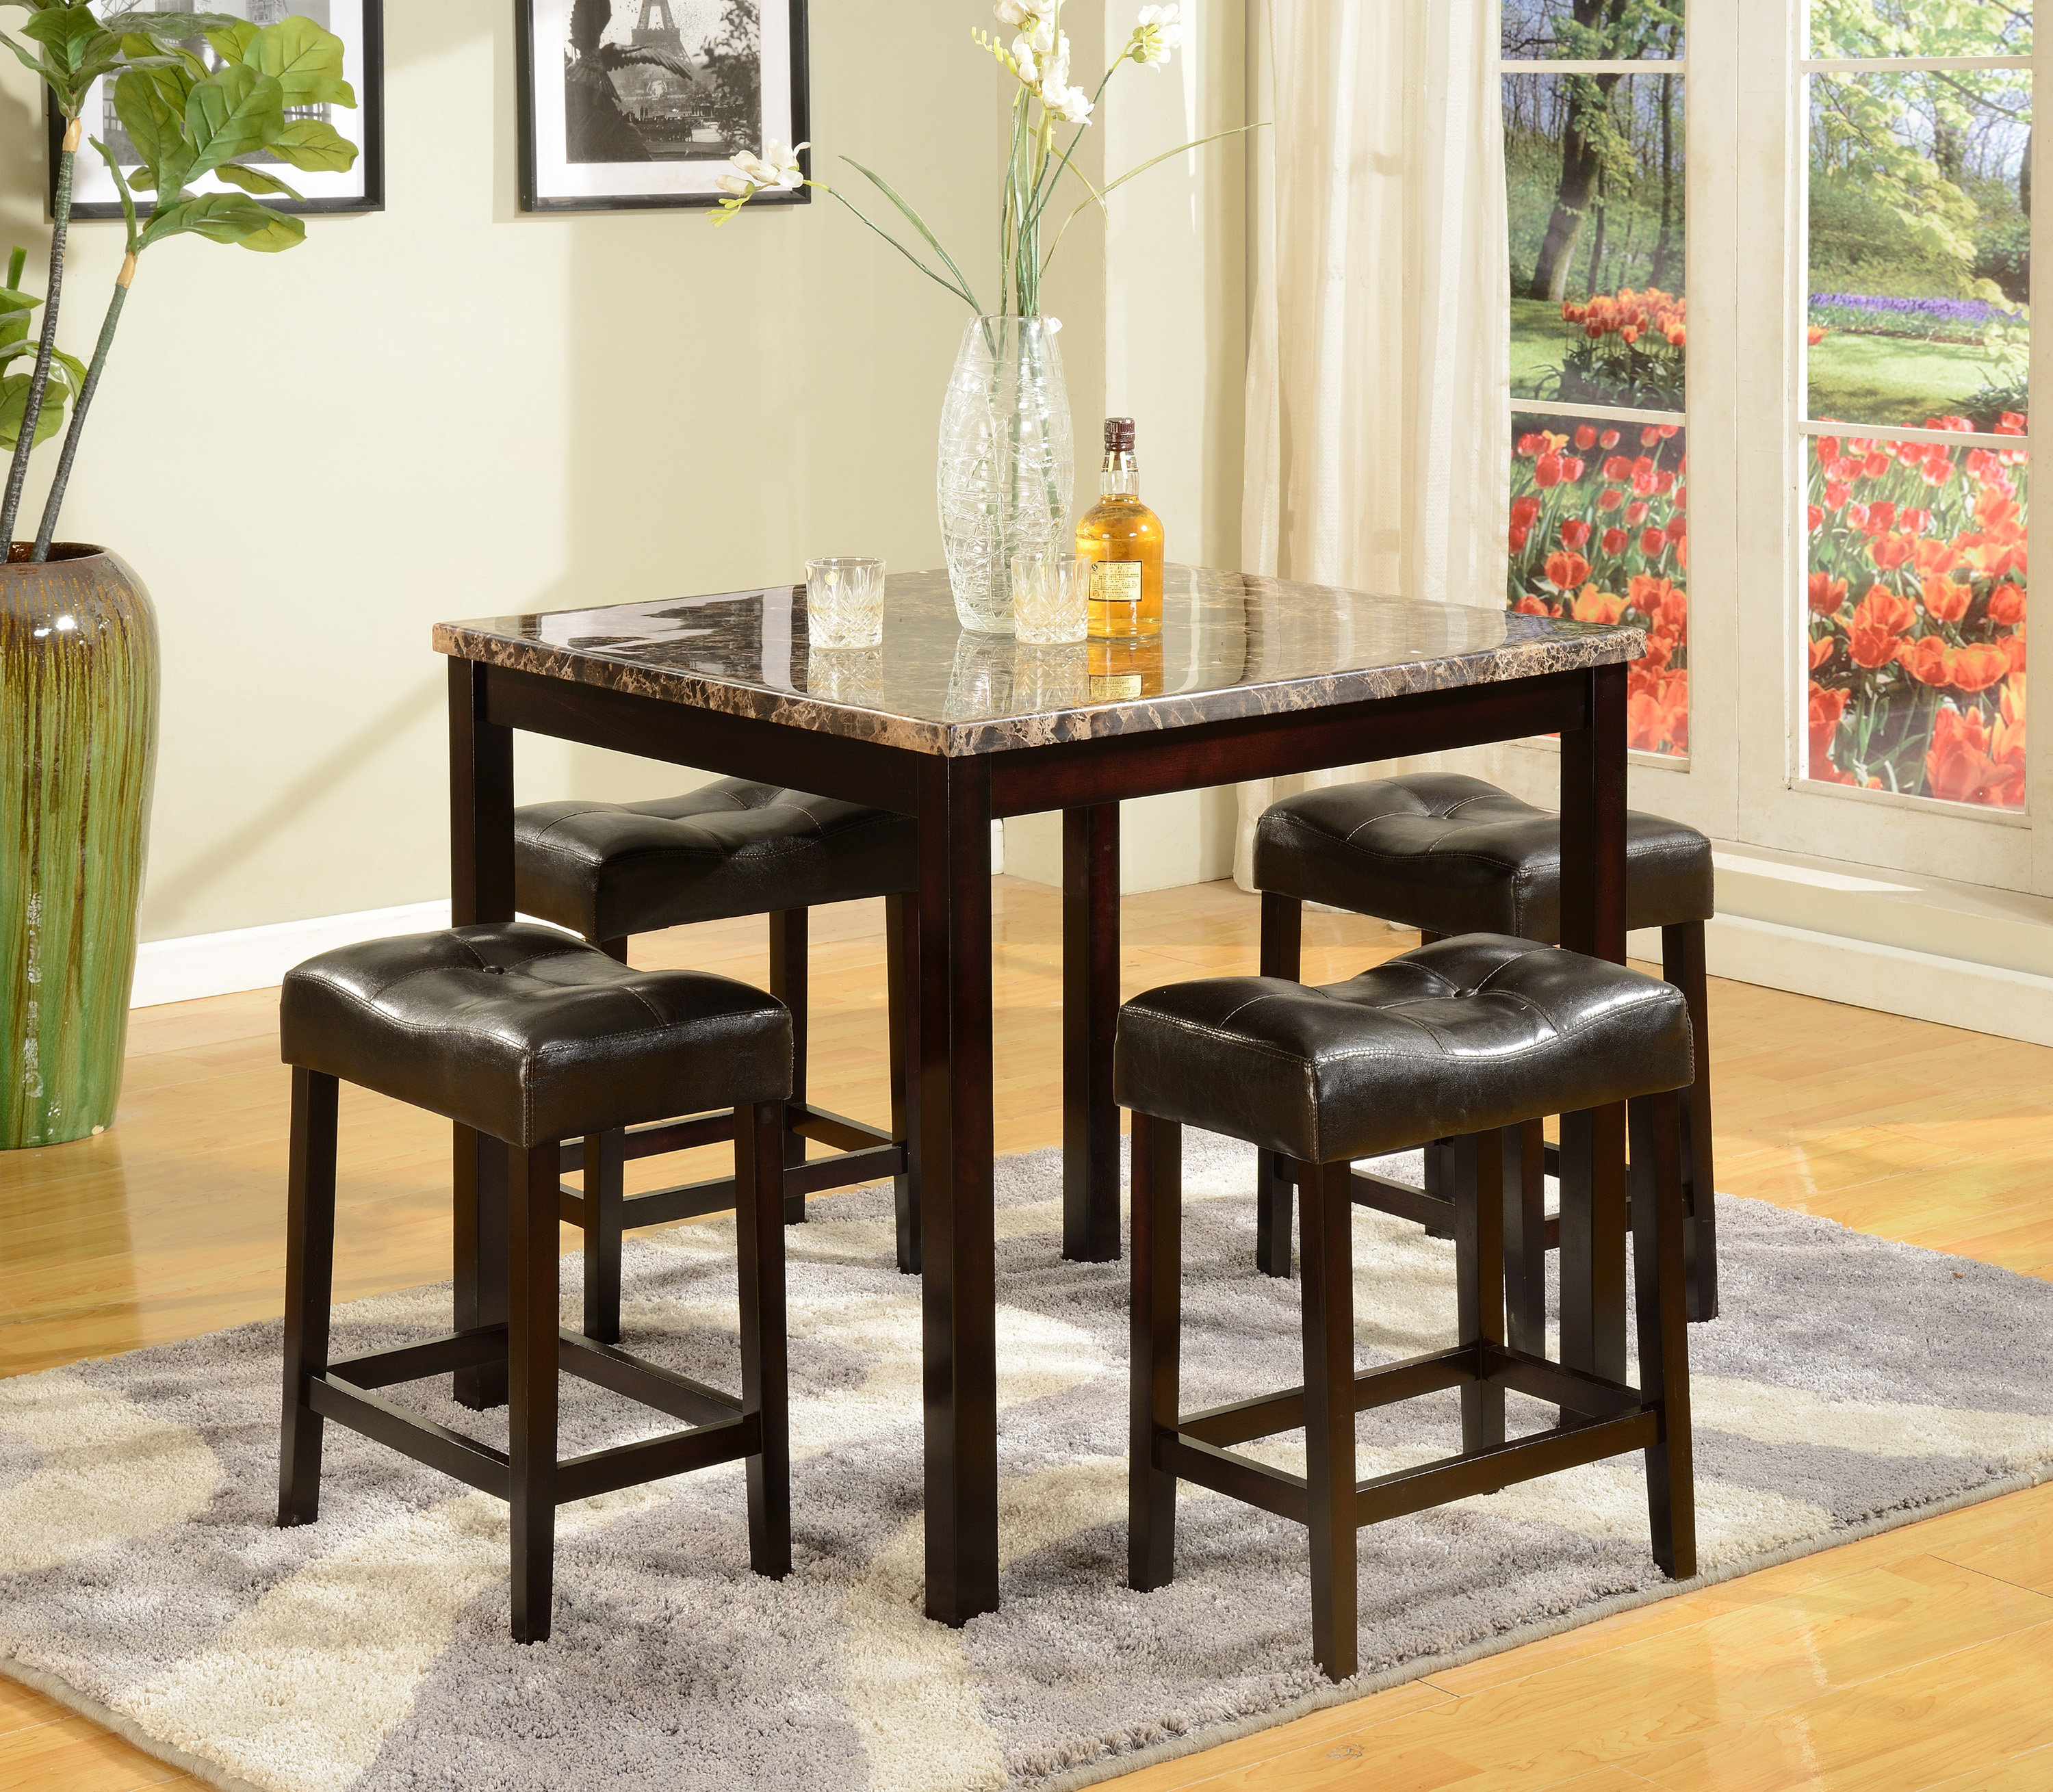 Octavia 5 Piece Counter Height Dining Set With Regard To Most Popular Penelope 3 Piece Counter Height Wood Dining Sets (View 18 of 20)